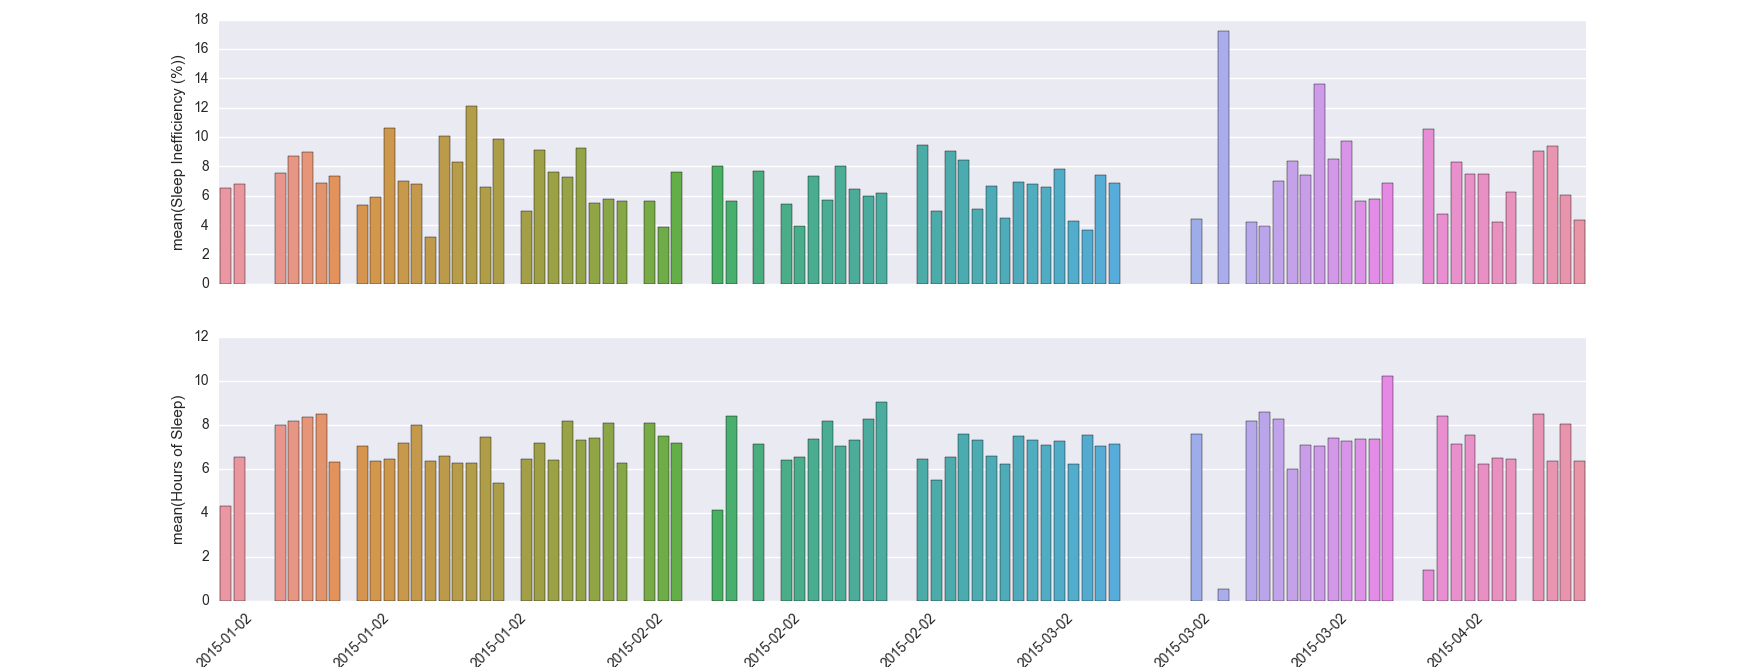 a quest for better sleep with fitbit data analysis 5agado medium